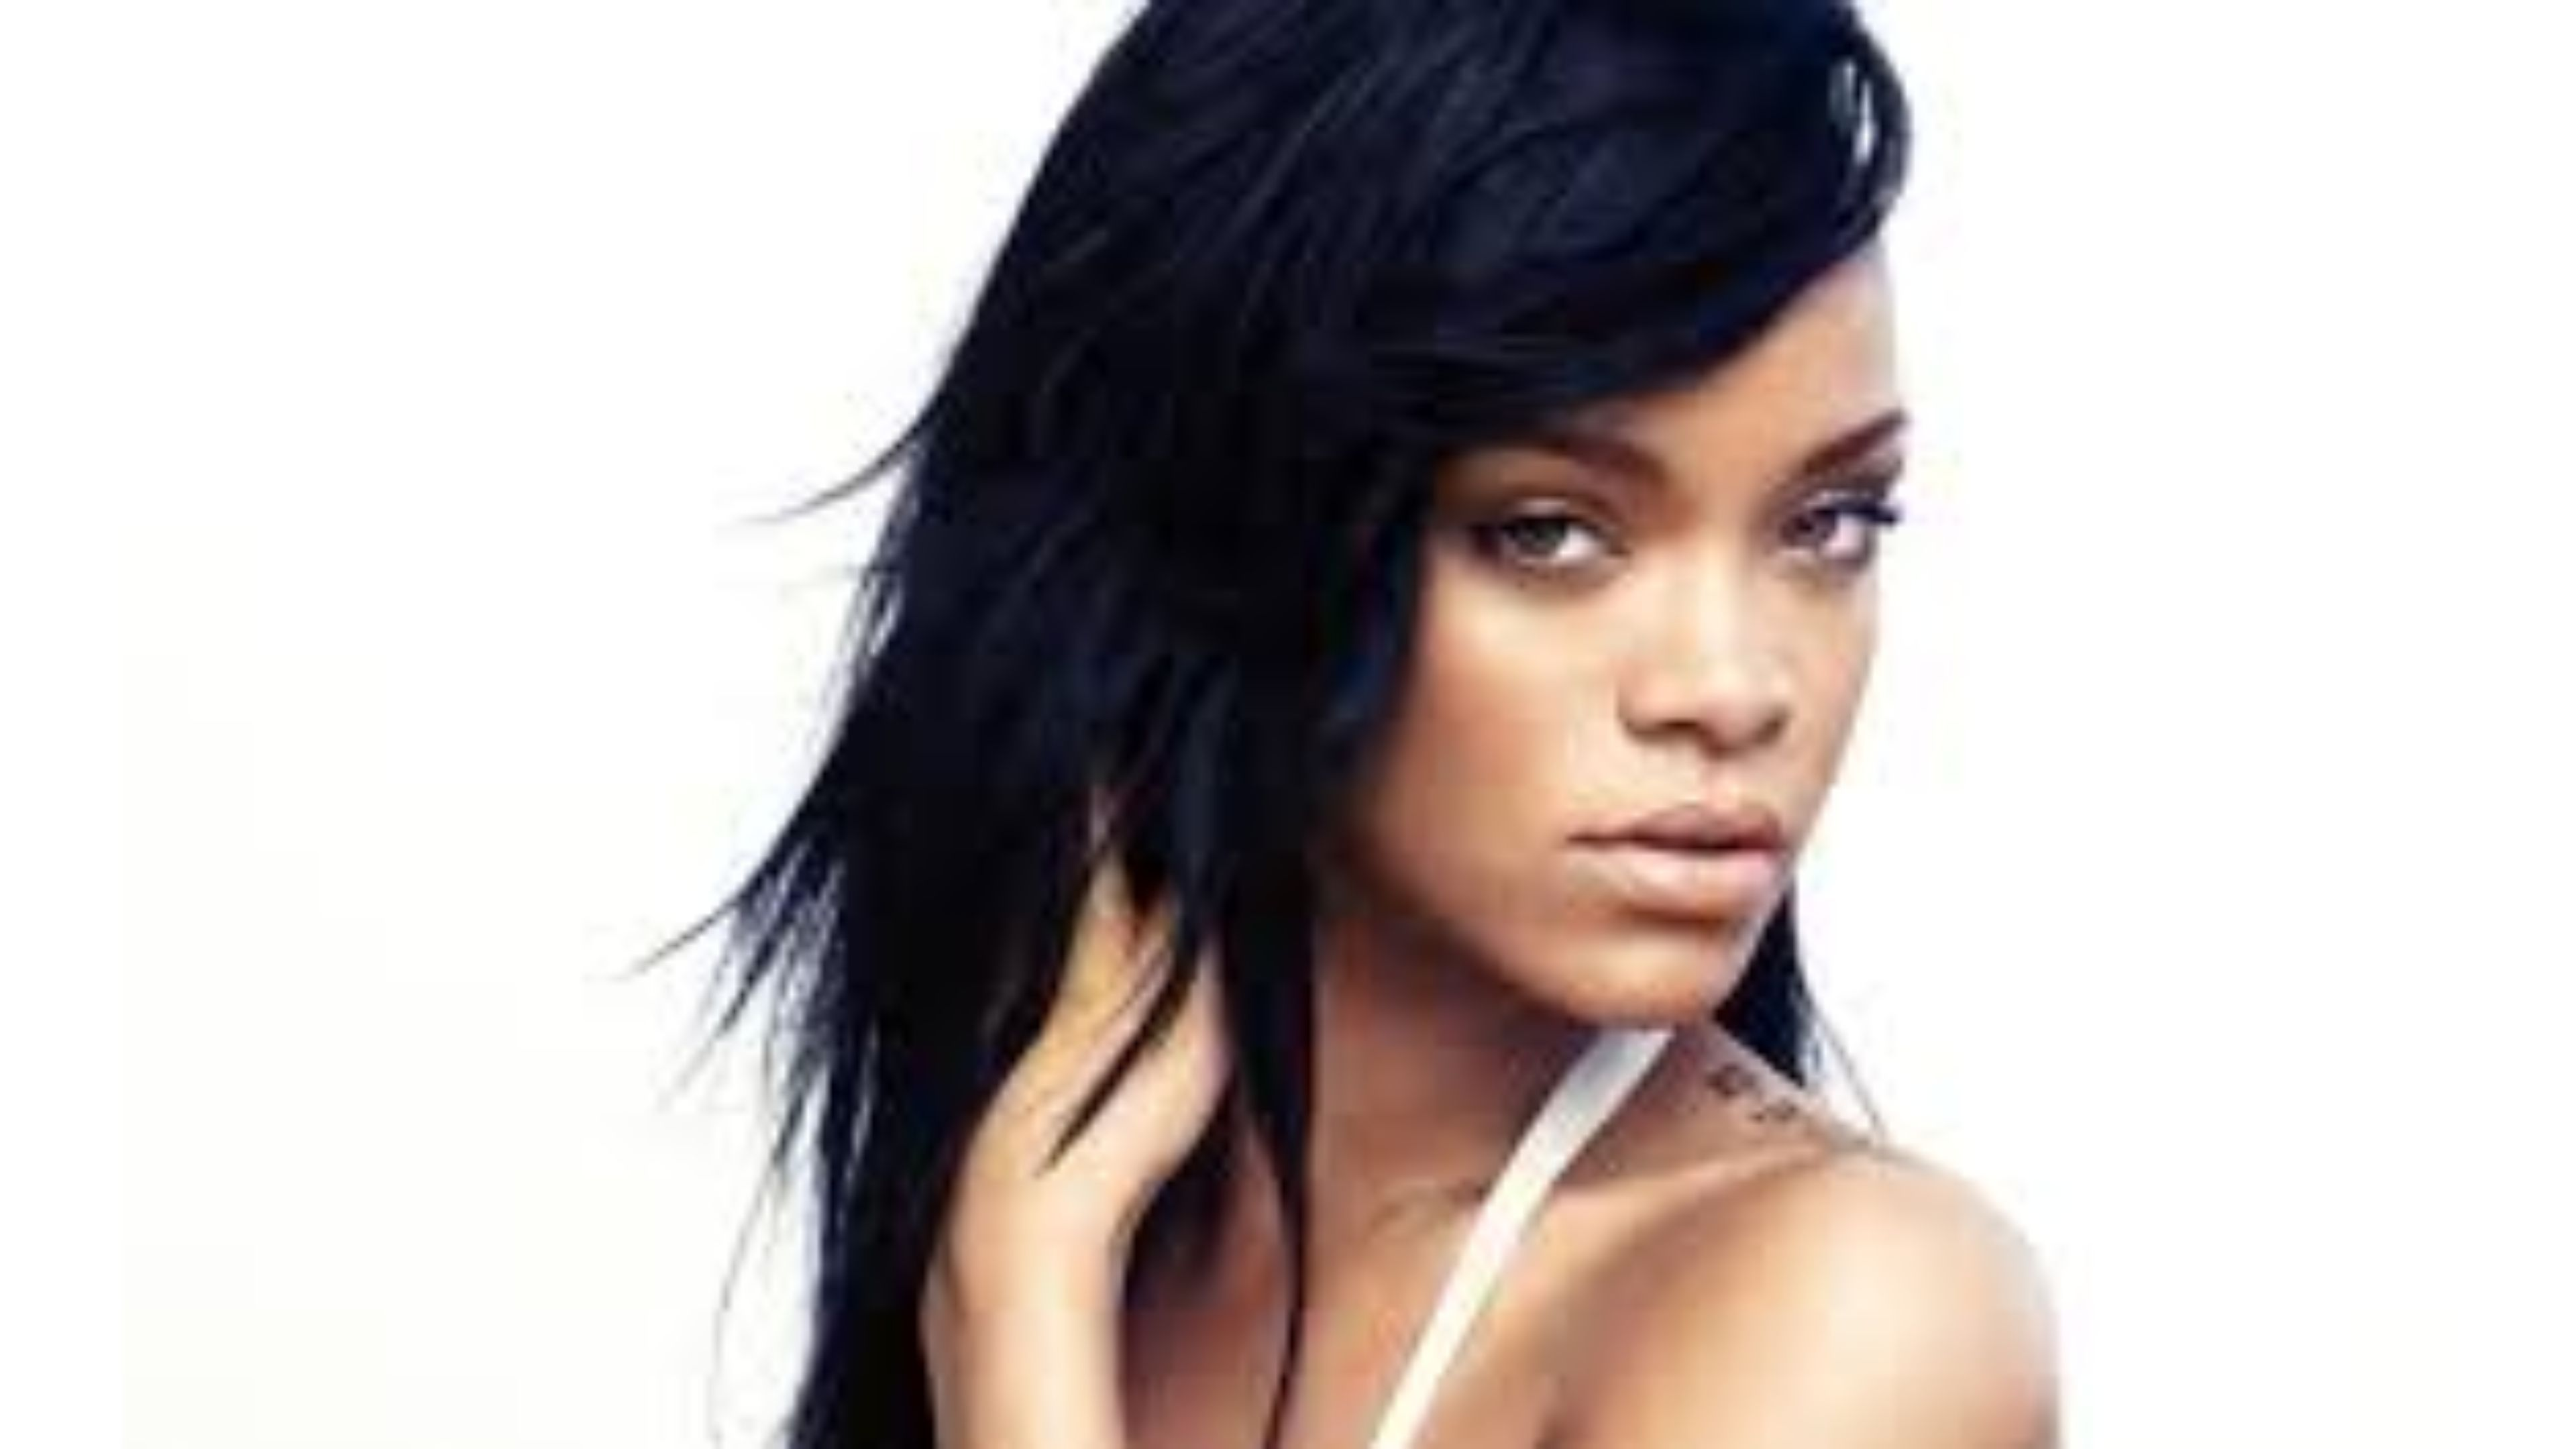 awesome rihanna actress 4k pictures free download